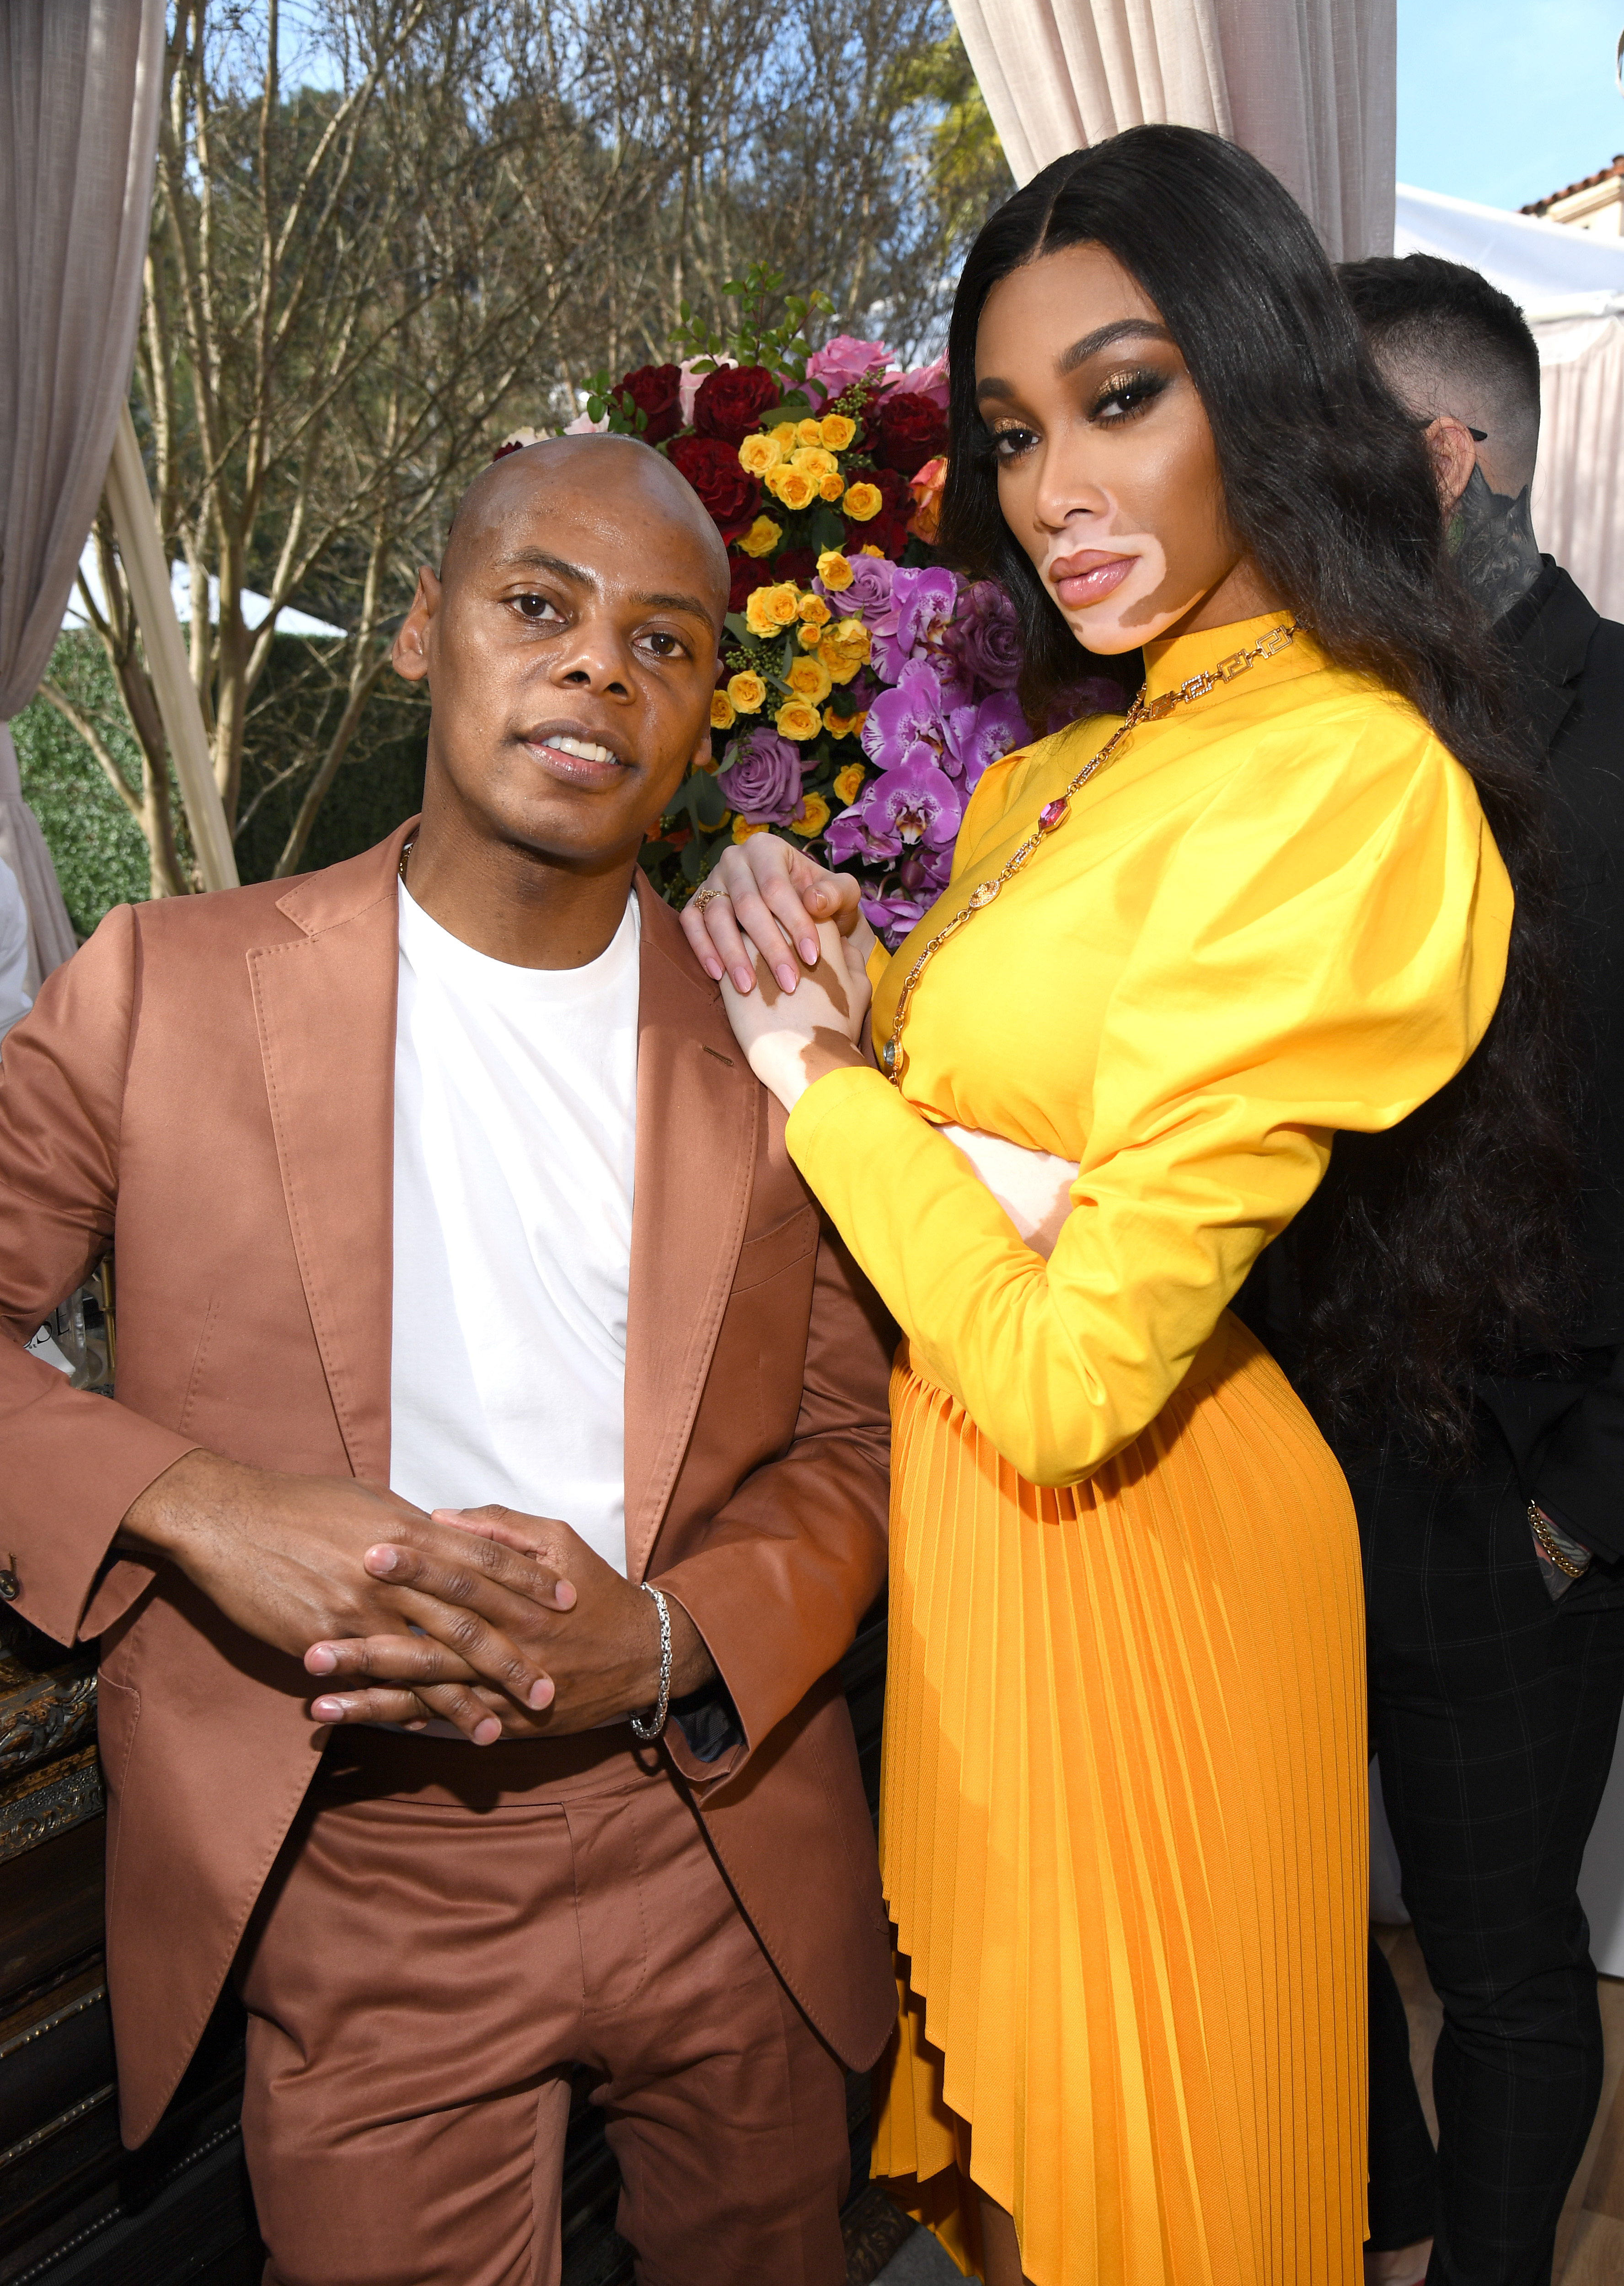 LOS ANGELES, CALIFORNIA - JANUARY 25: Tyran 'Tata' Smith and Winnie Harlow attend 2020 Roc Nation THE BRUNCH on January 25, 2020 in Los Angeles, California. (Photo by Kevin Mazur/Getty Images for Roc Nation)